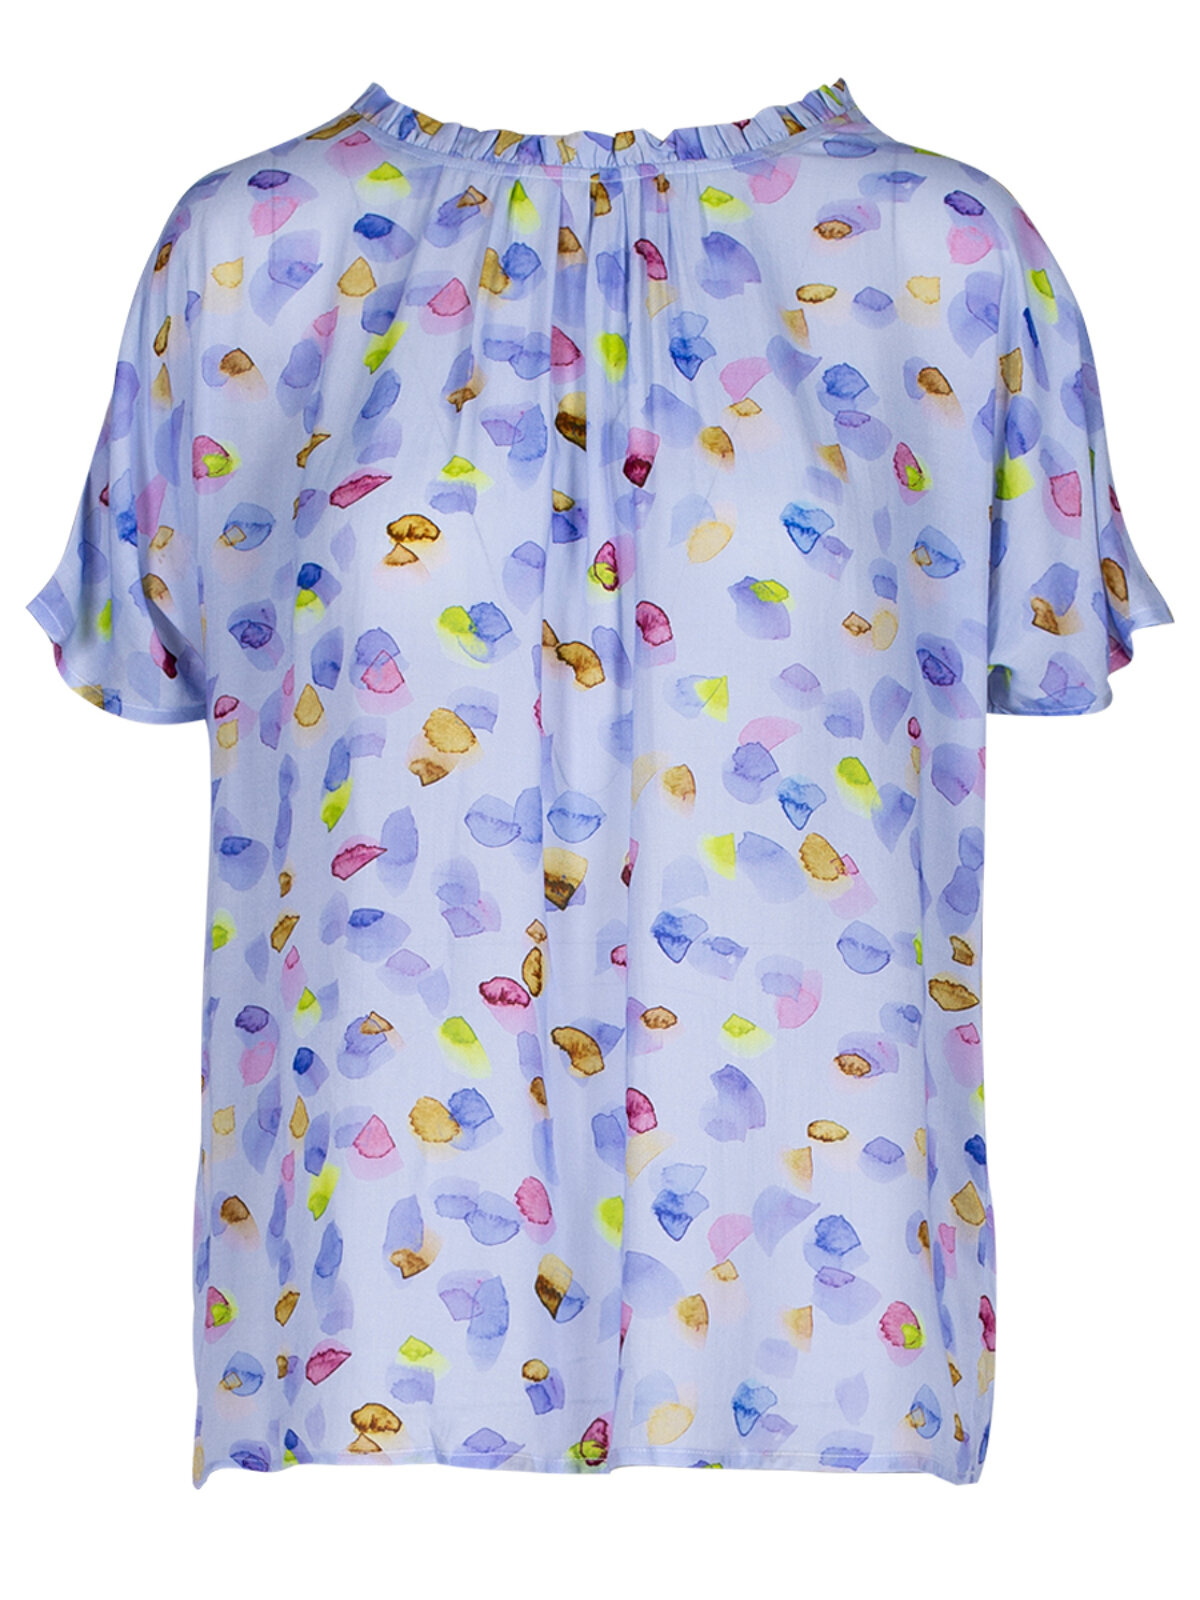 Tabea Ditsy Shirt - Anonyme Designers